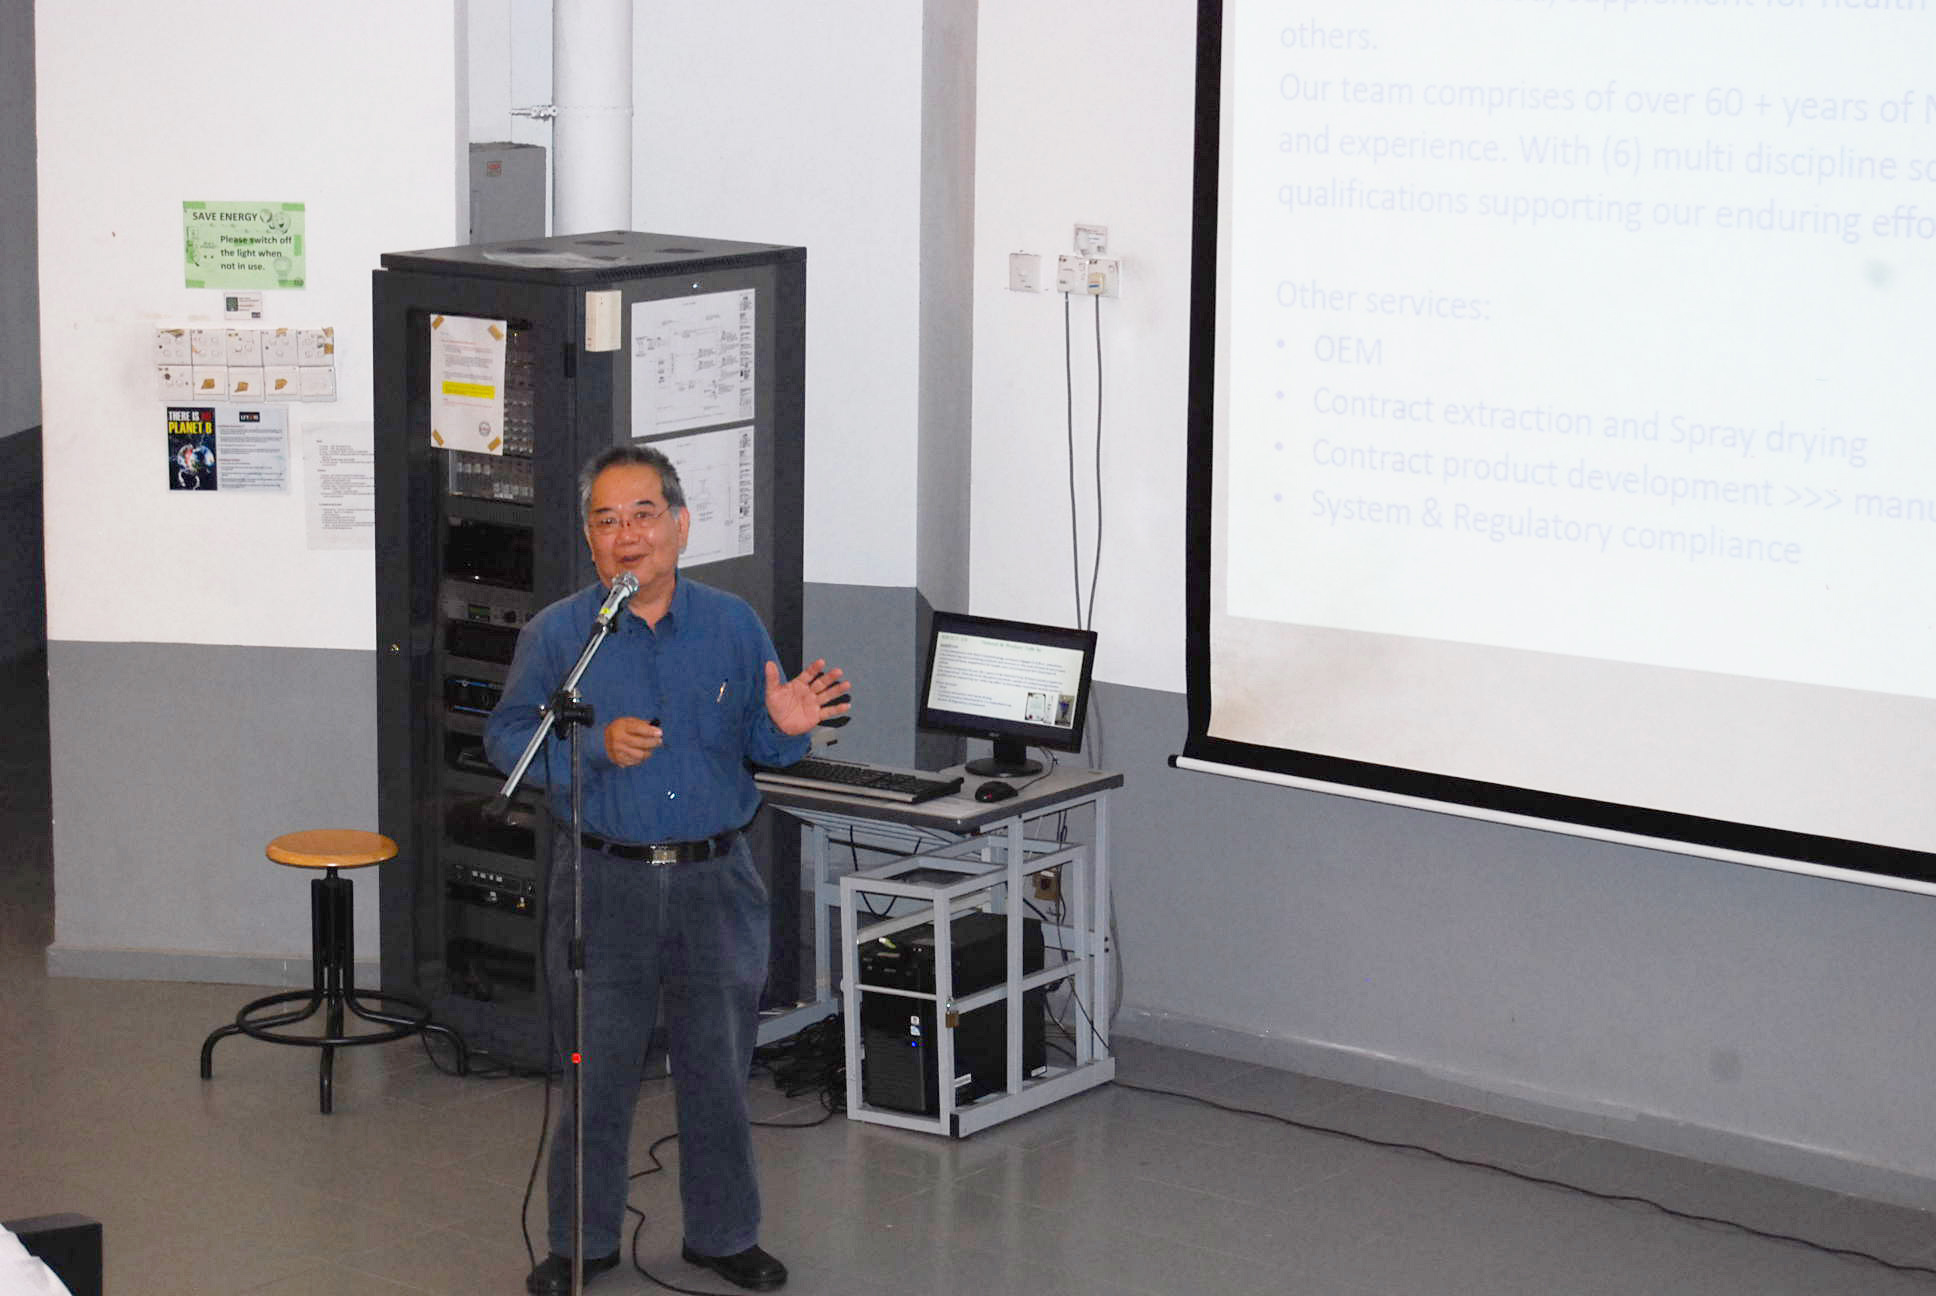 Stuart Soo introducing the services provided by his company